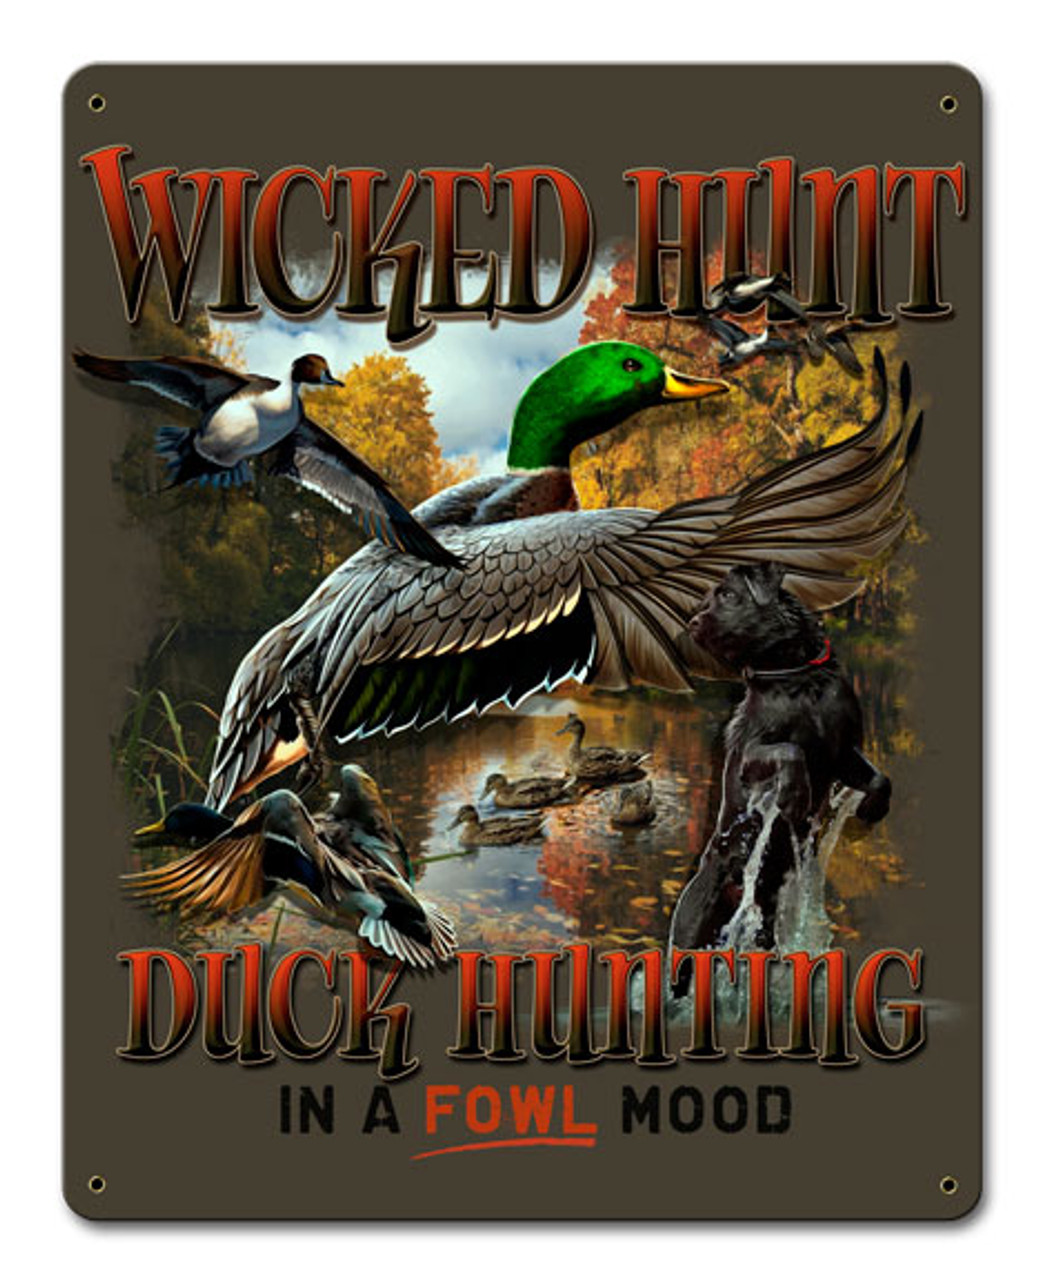 Duck Hunter Brown Backgound Metal Sign 12 x 15 Inches